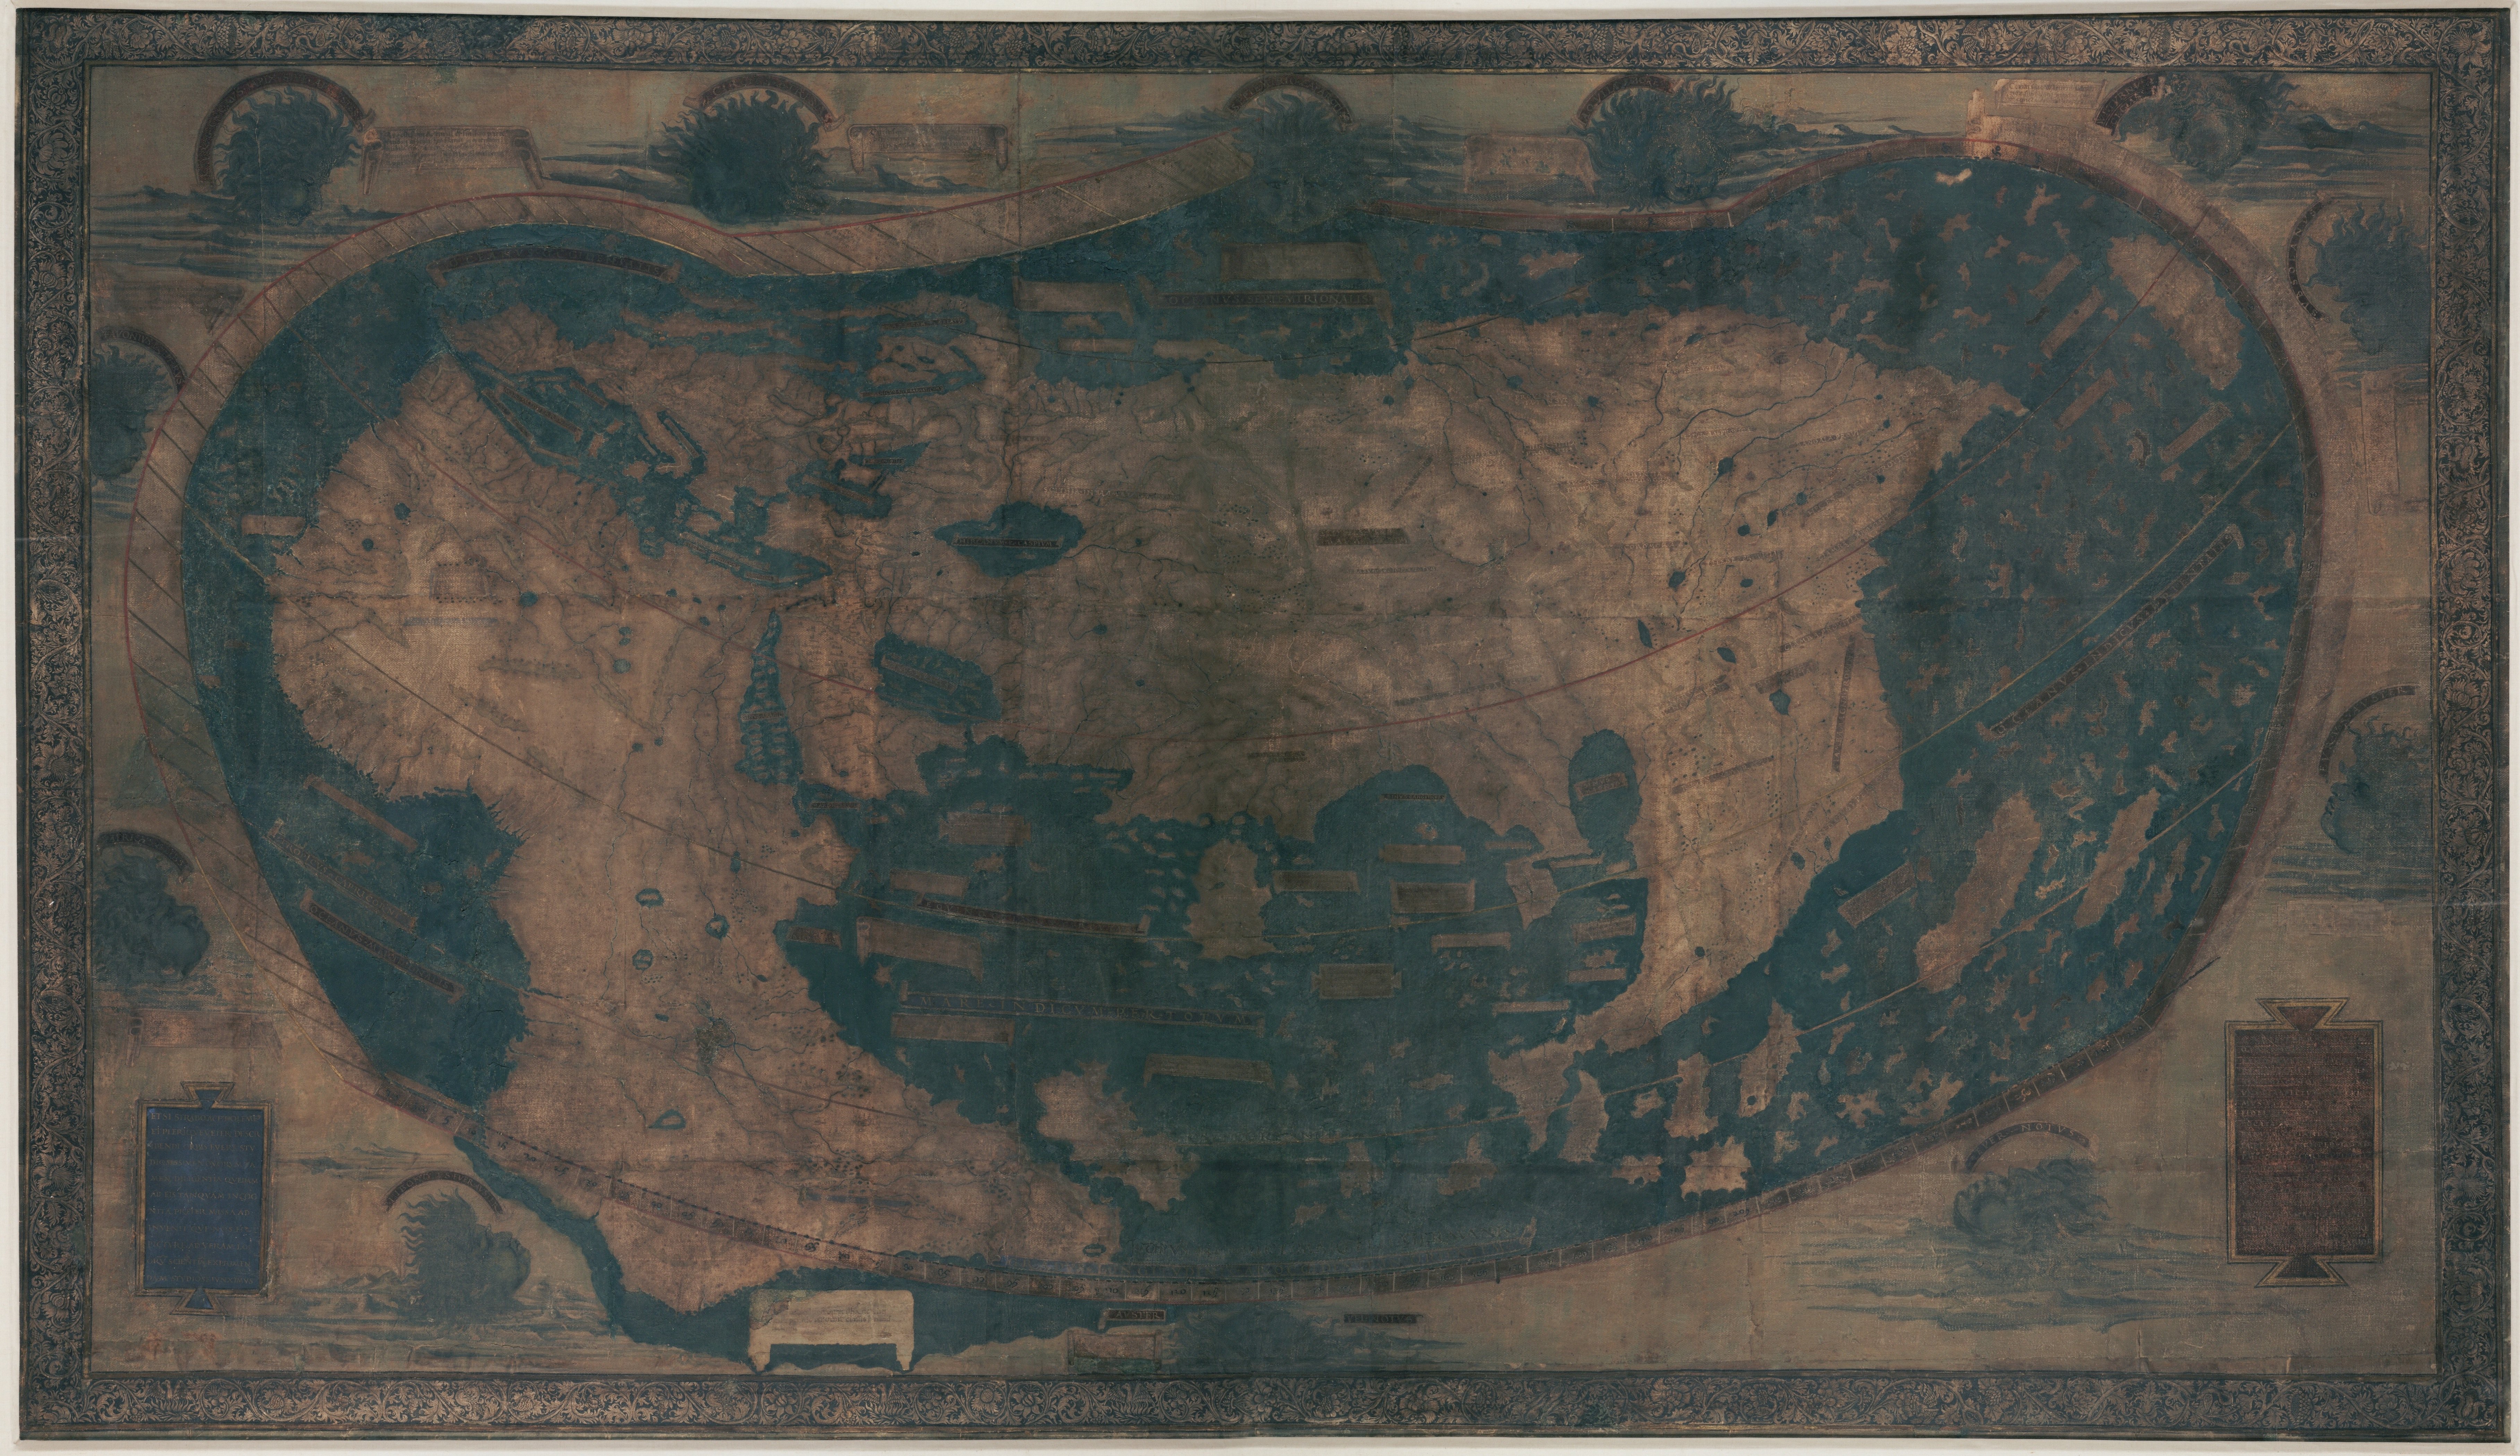 Henricus Martellus - Map of the world - 1489 - Yale archive.jpg